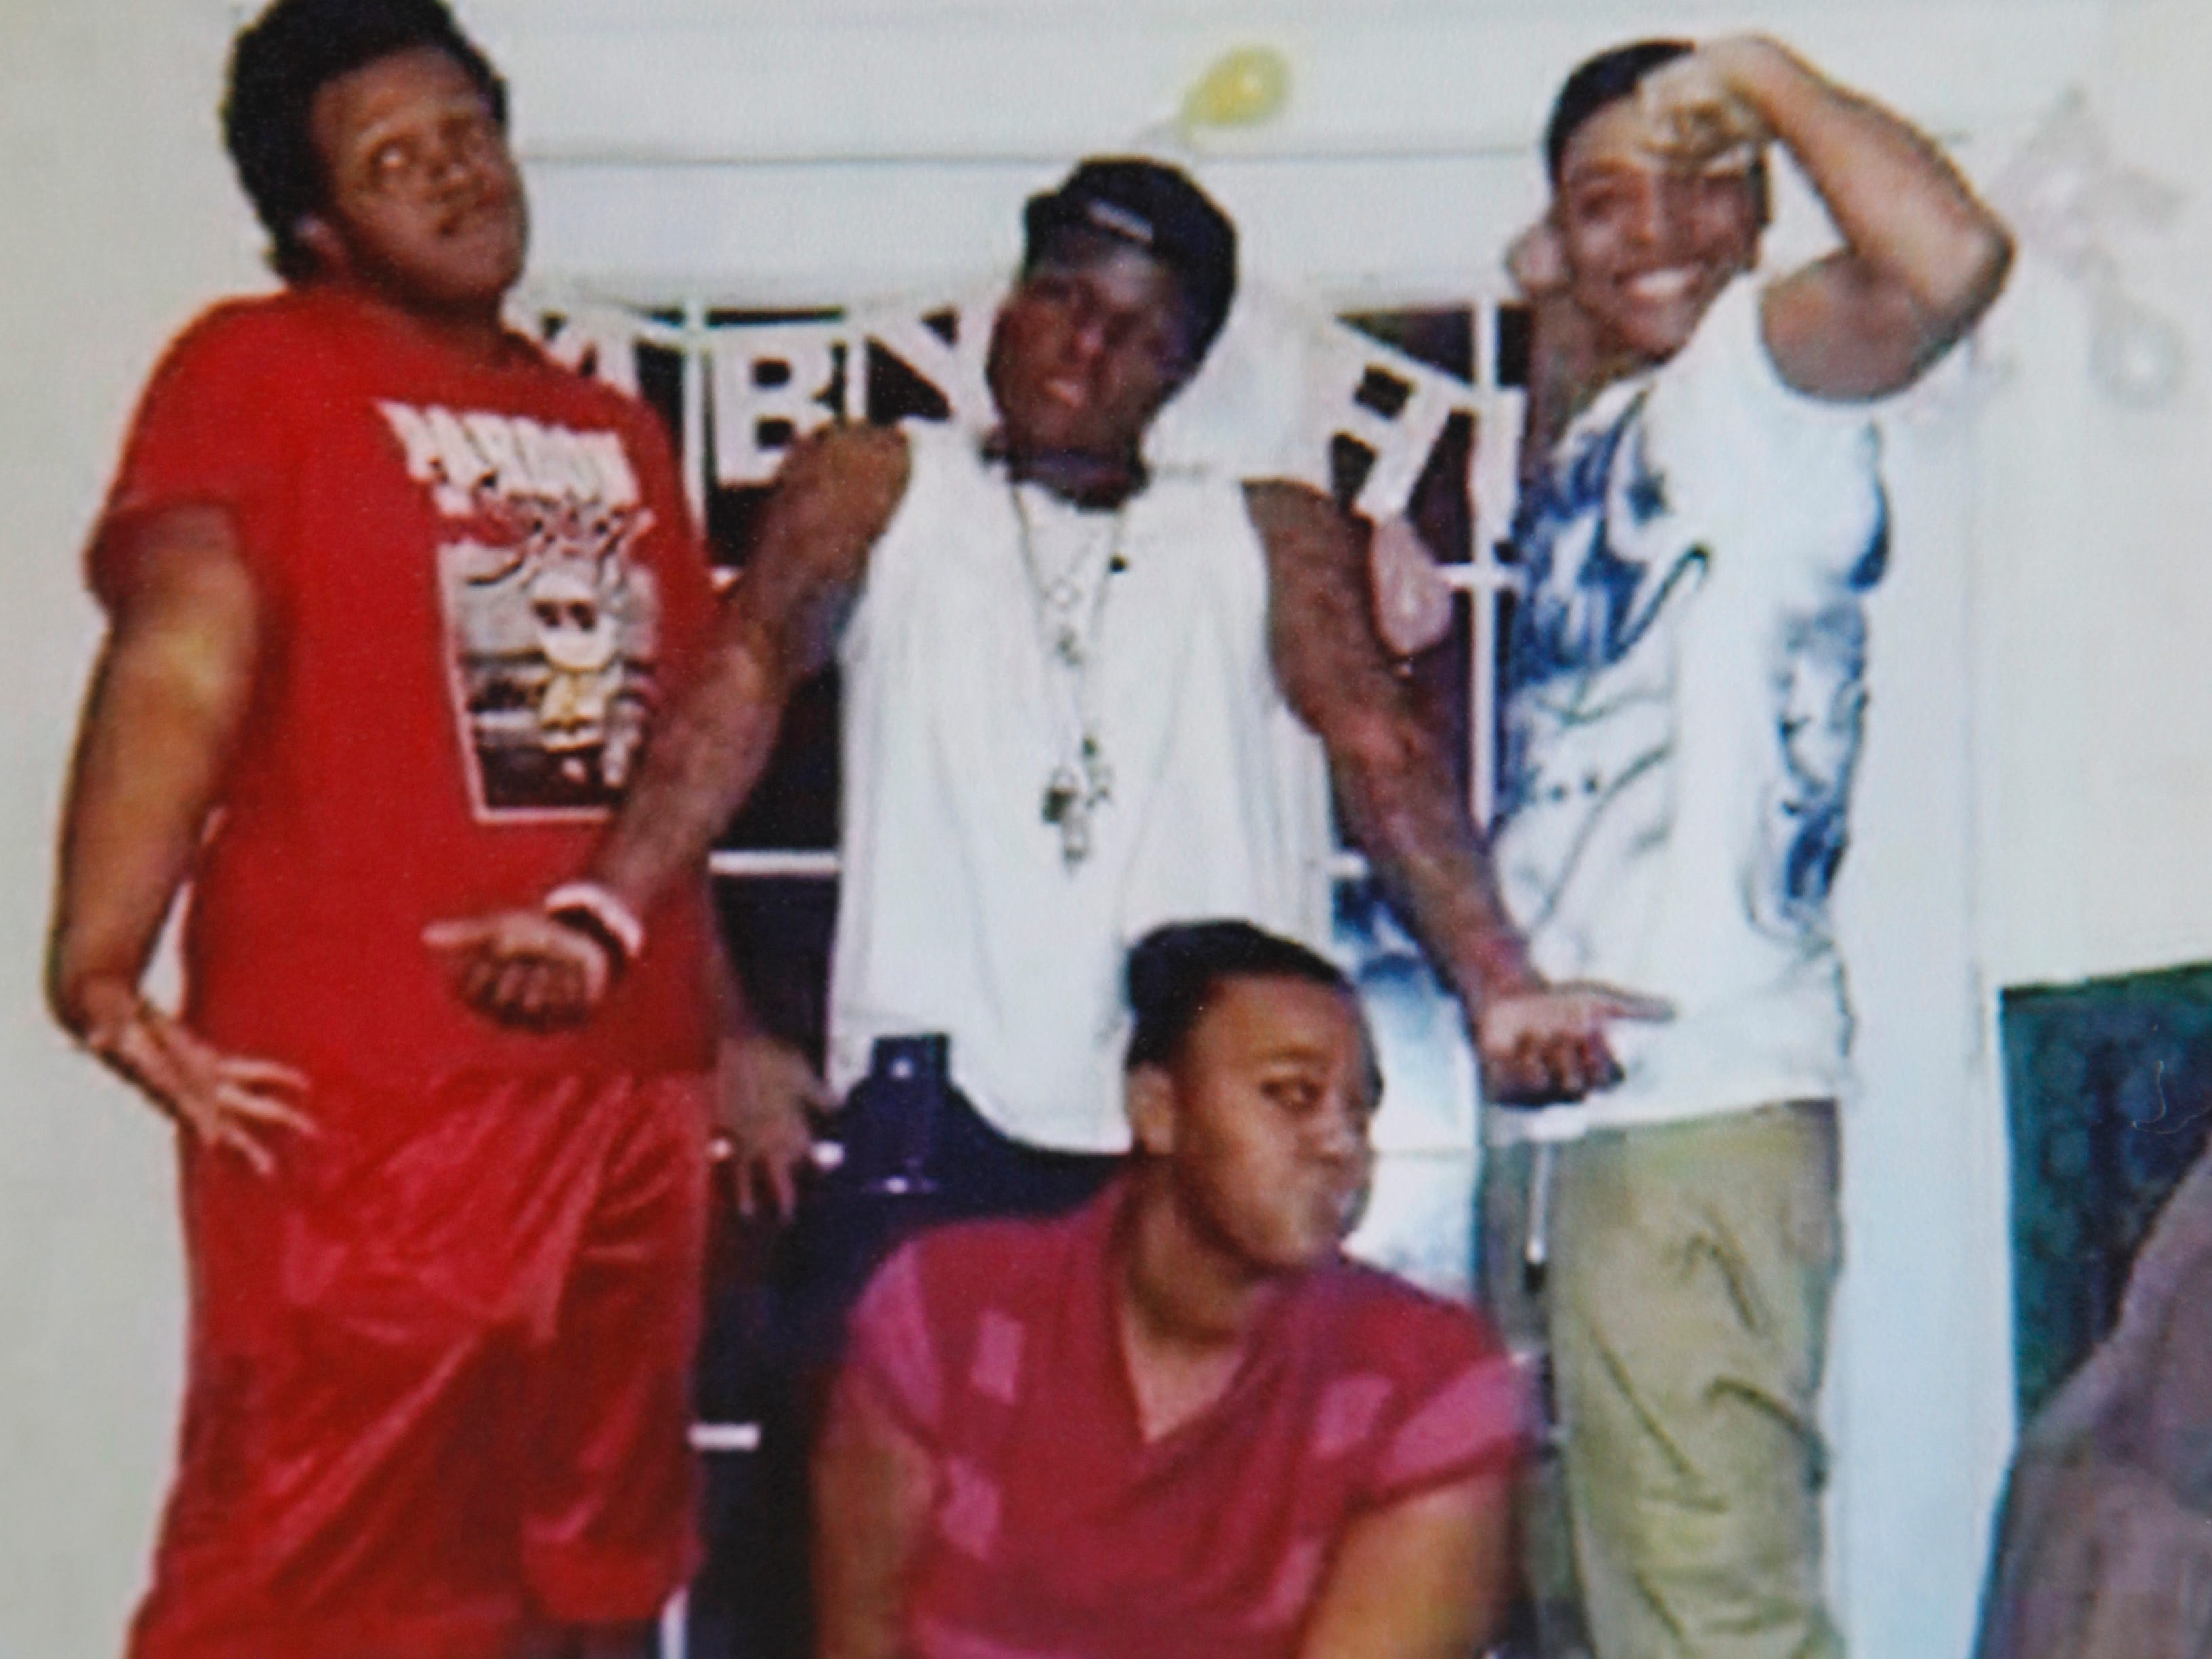 Anthony Daniels, 26, center, poses for a photo with his siblings, Adrian, left, Antwan, right, and Maggie, kneeling, in 2014.